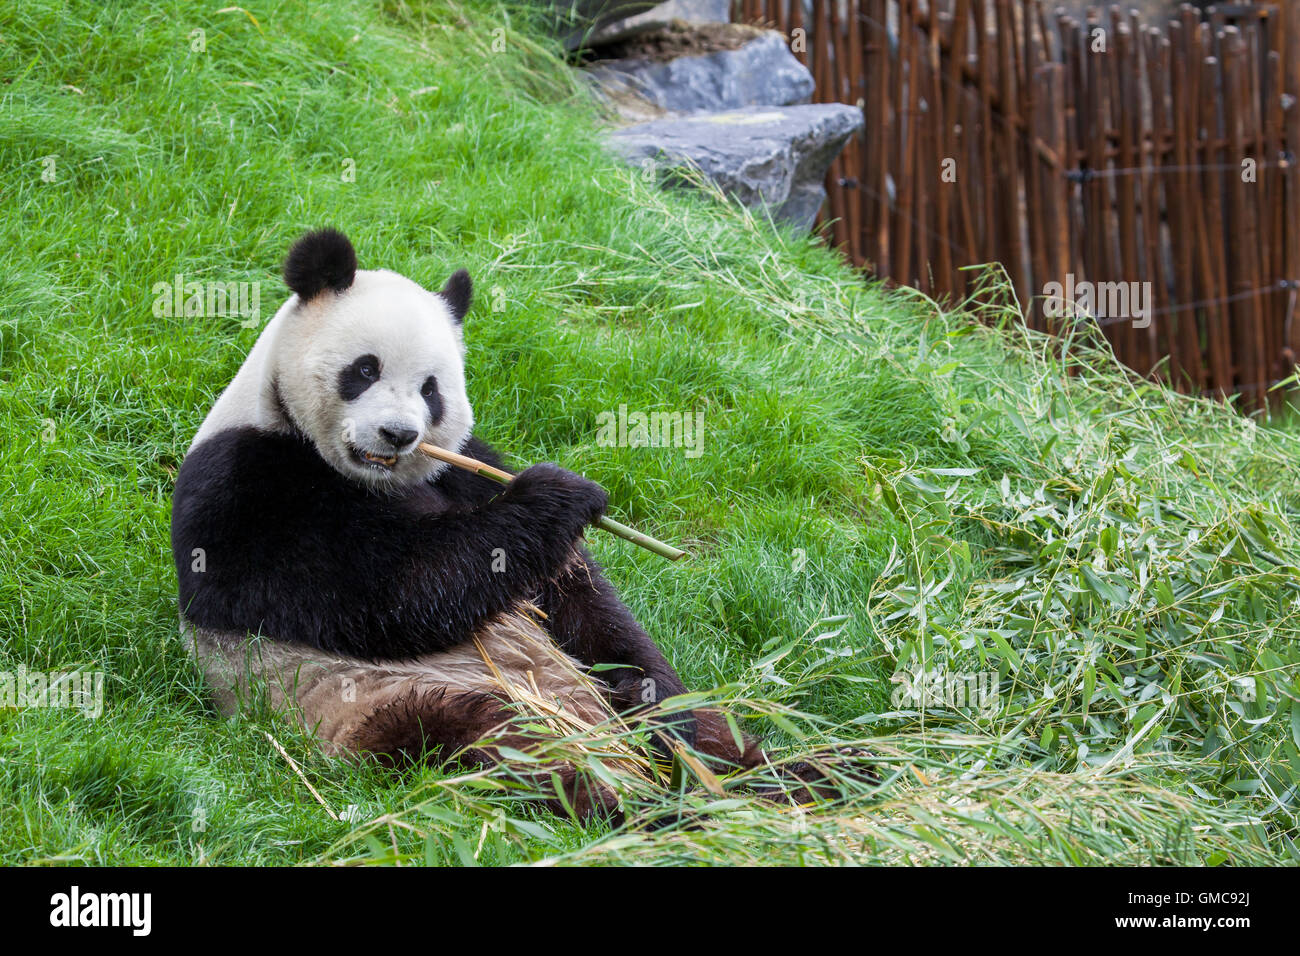 Panda sits on the ground and eats bamboo in a Zoo - Stock Image